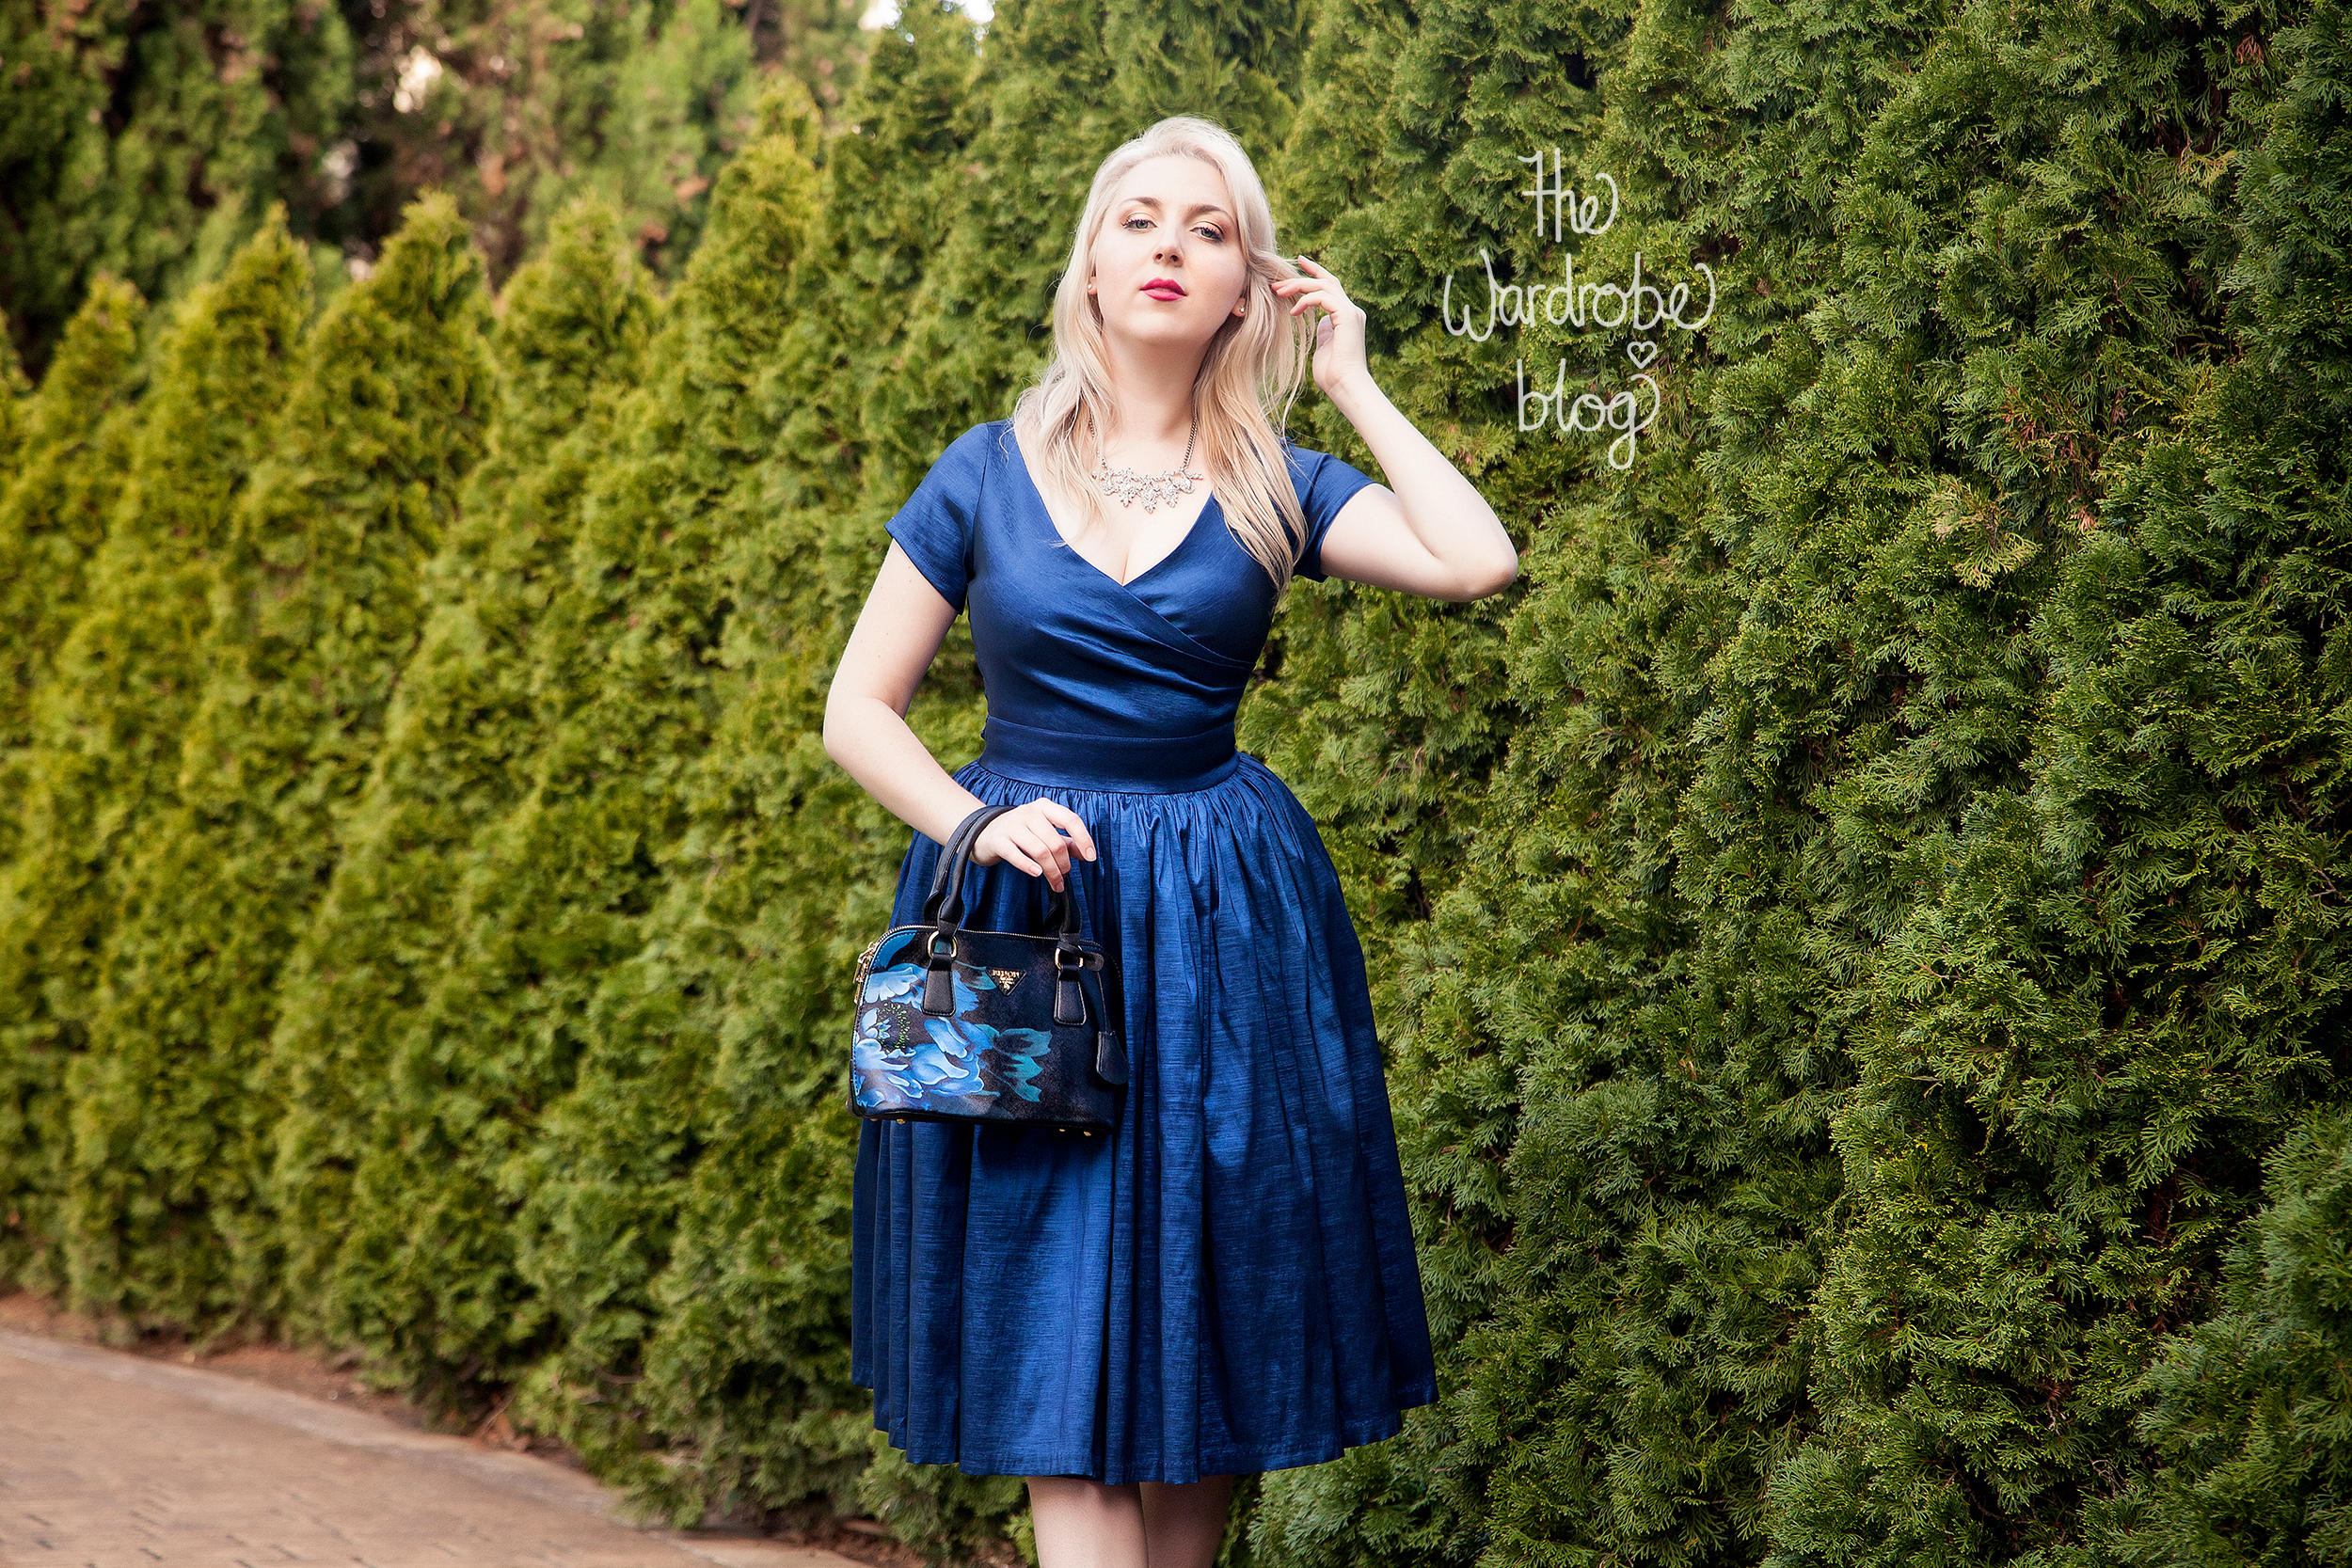 Ava Swing Dress in Dark Blue available at the Rita Sue Boutique, by Pinup Girl Clothing. Finon Milano Handbag with blue illustration from the Rita Sue Boutique. Necklace from Veronica B.